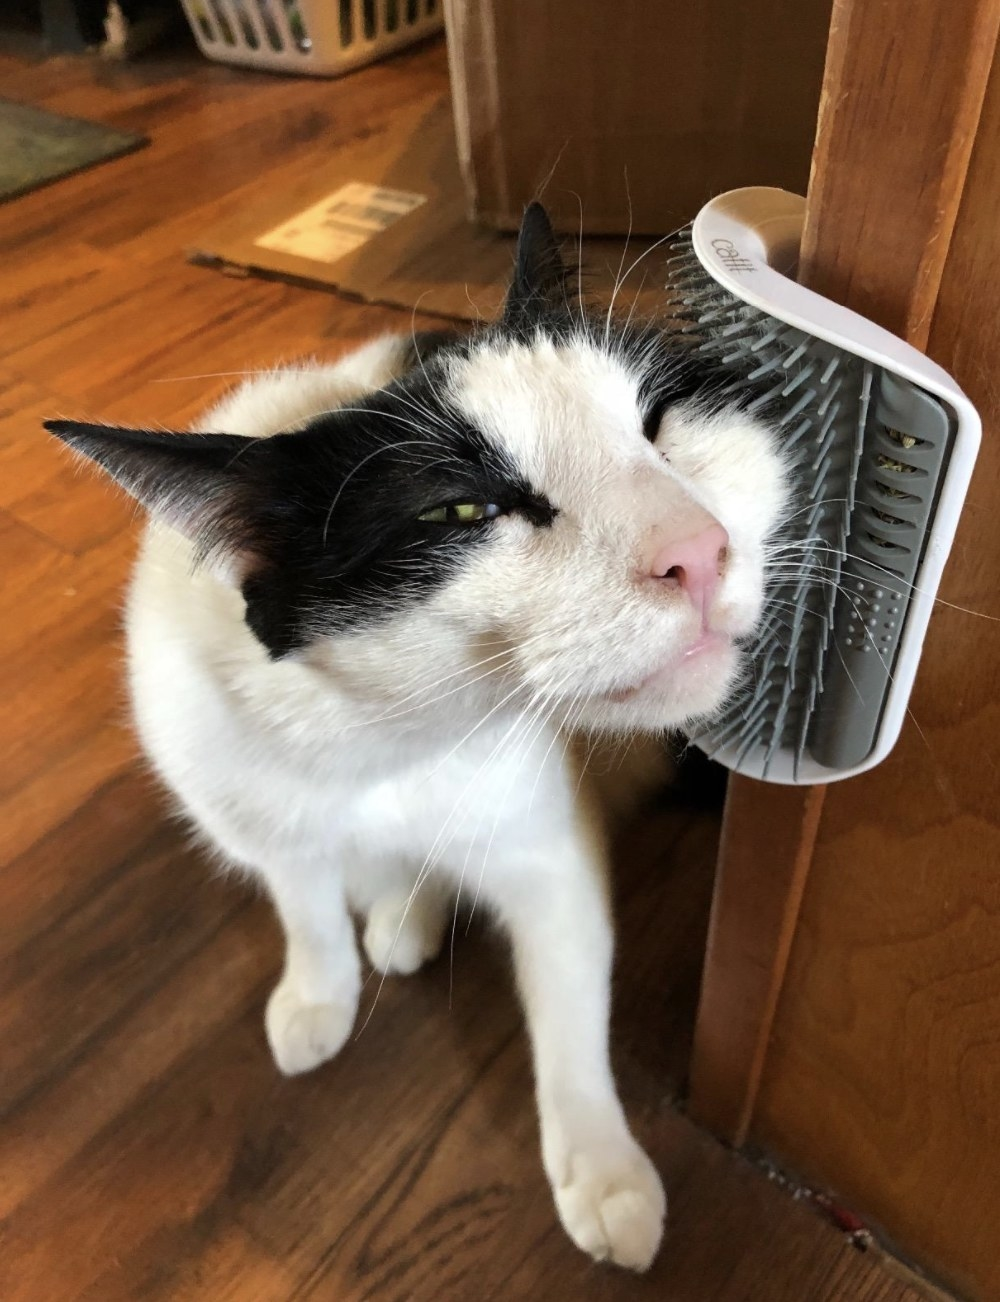 A black-and-white cat rubbing its face on a Catit grooming toy that adheres to any corner